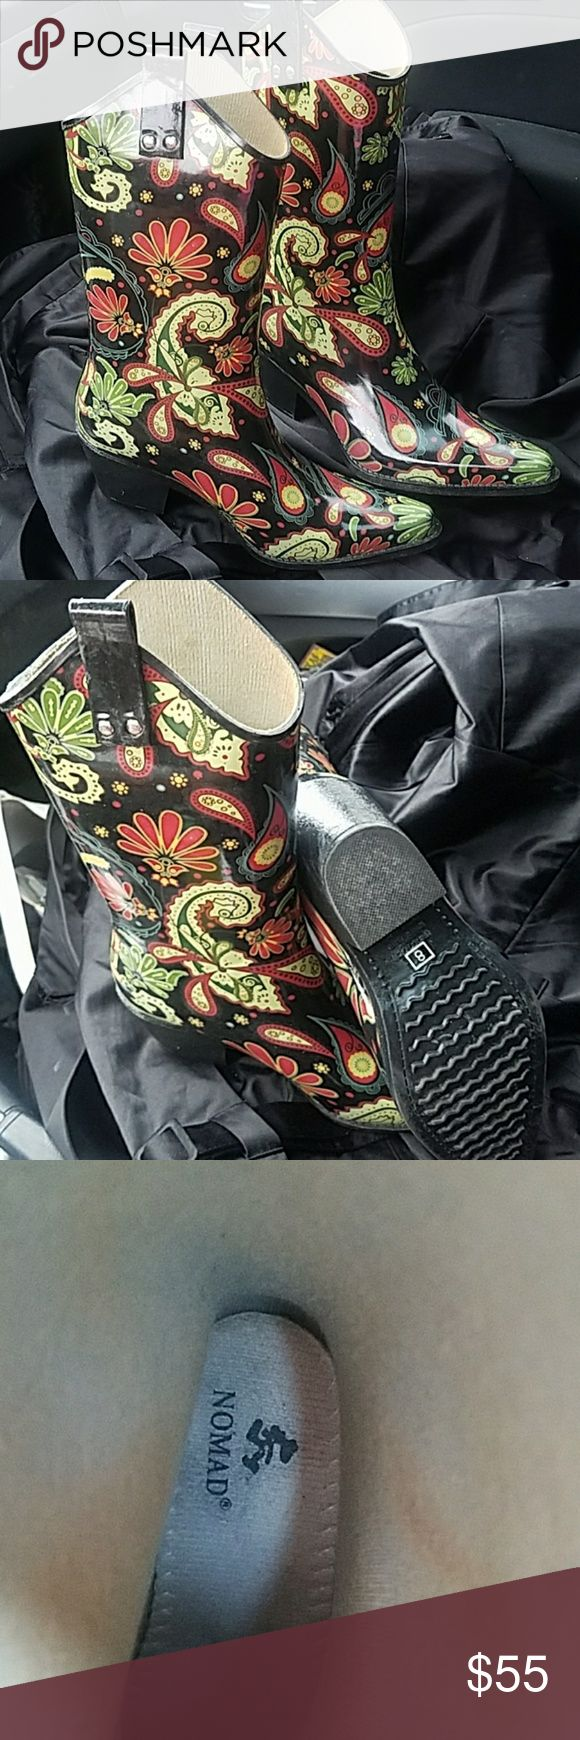 Nomad Cowboy Rain  Boots Gorgeous, Fun, Chic only worn once for about 2 hours, LOVE these,  just need a size 9! Will trade for exact boits in size 9 ! Nomad Shoes Winter & Rain Boots